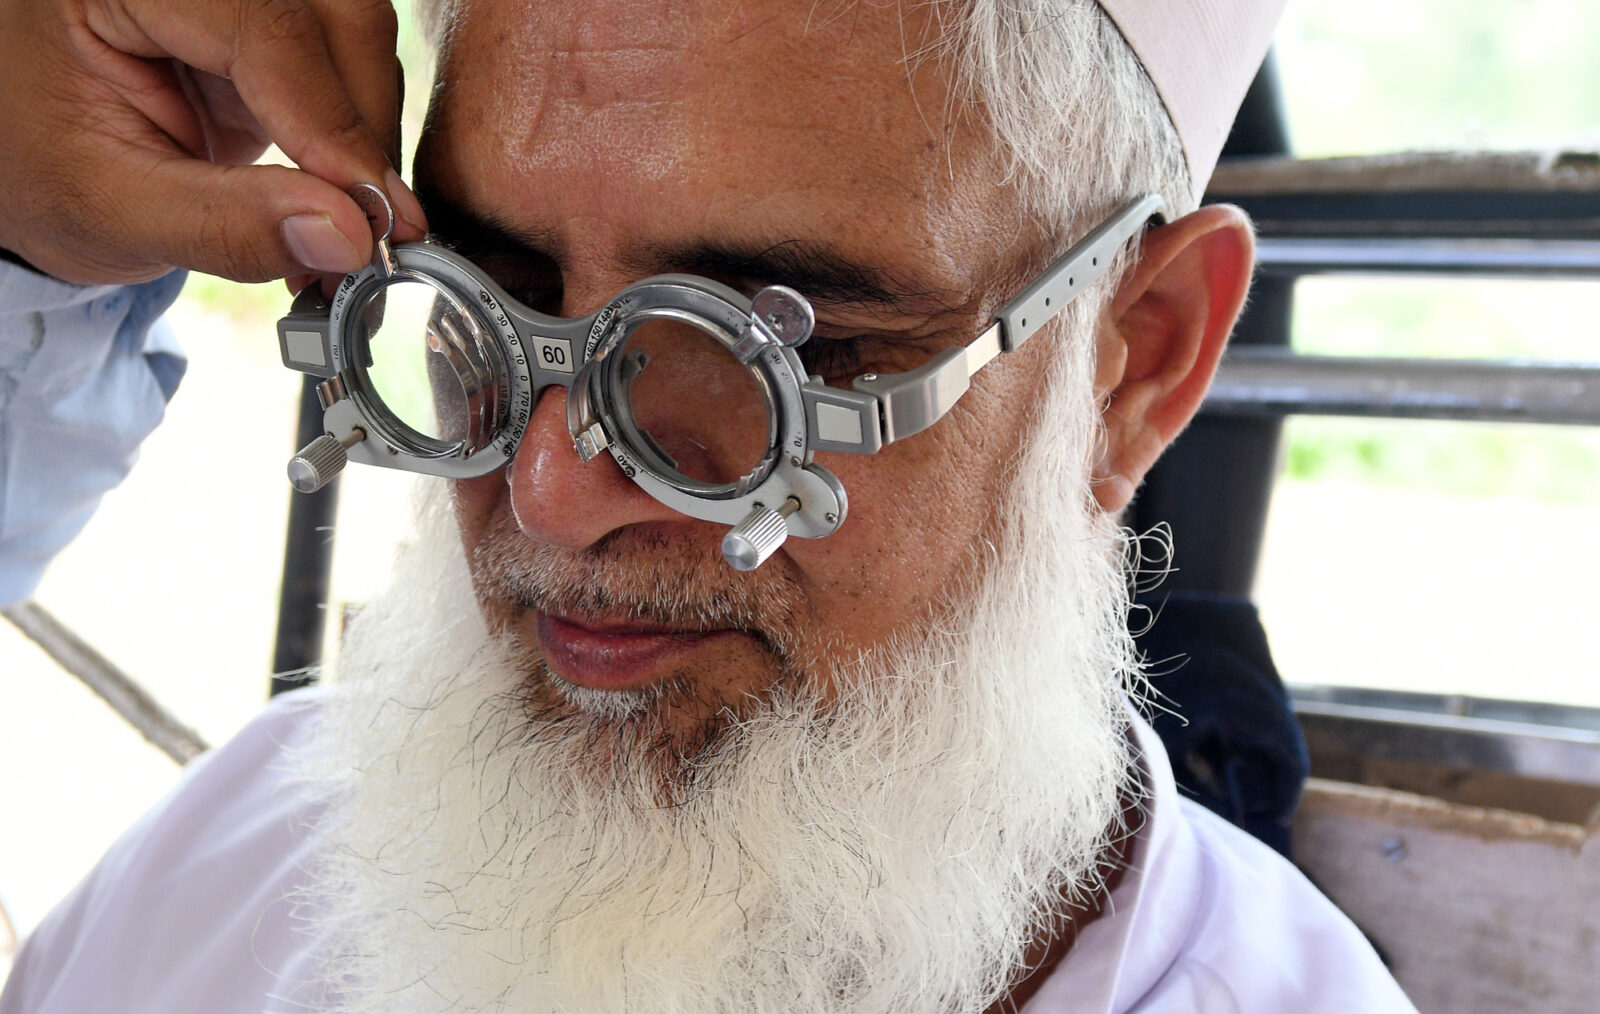 An elderly man with a grey beard tries on glasses as part of an eye test.